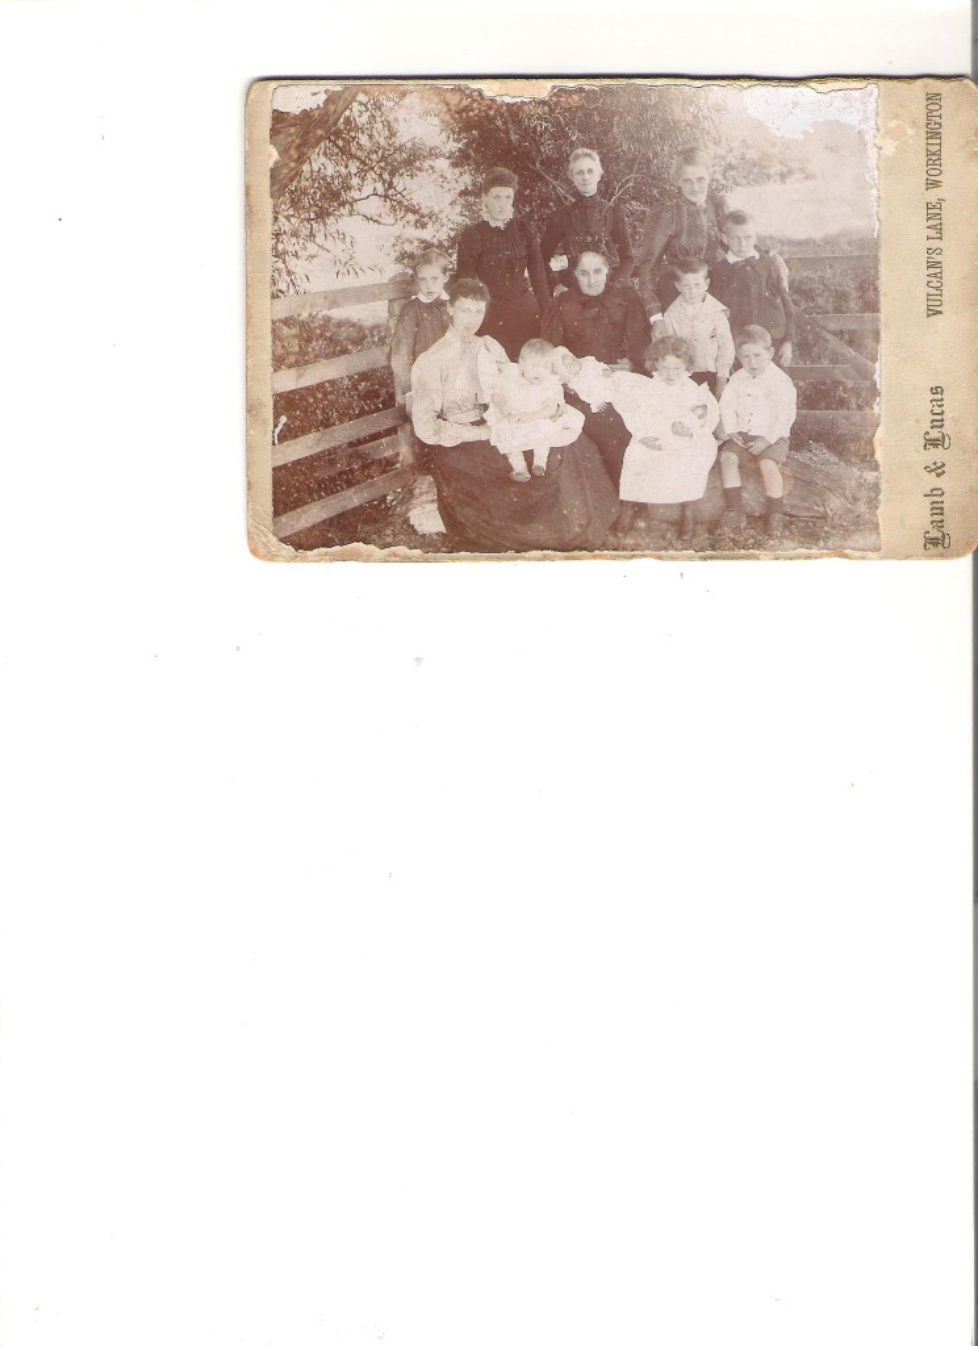 Family photo with Charles as a boy standing on the right with his younger brother Thomas